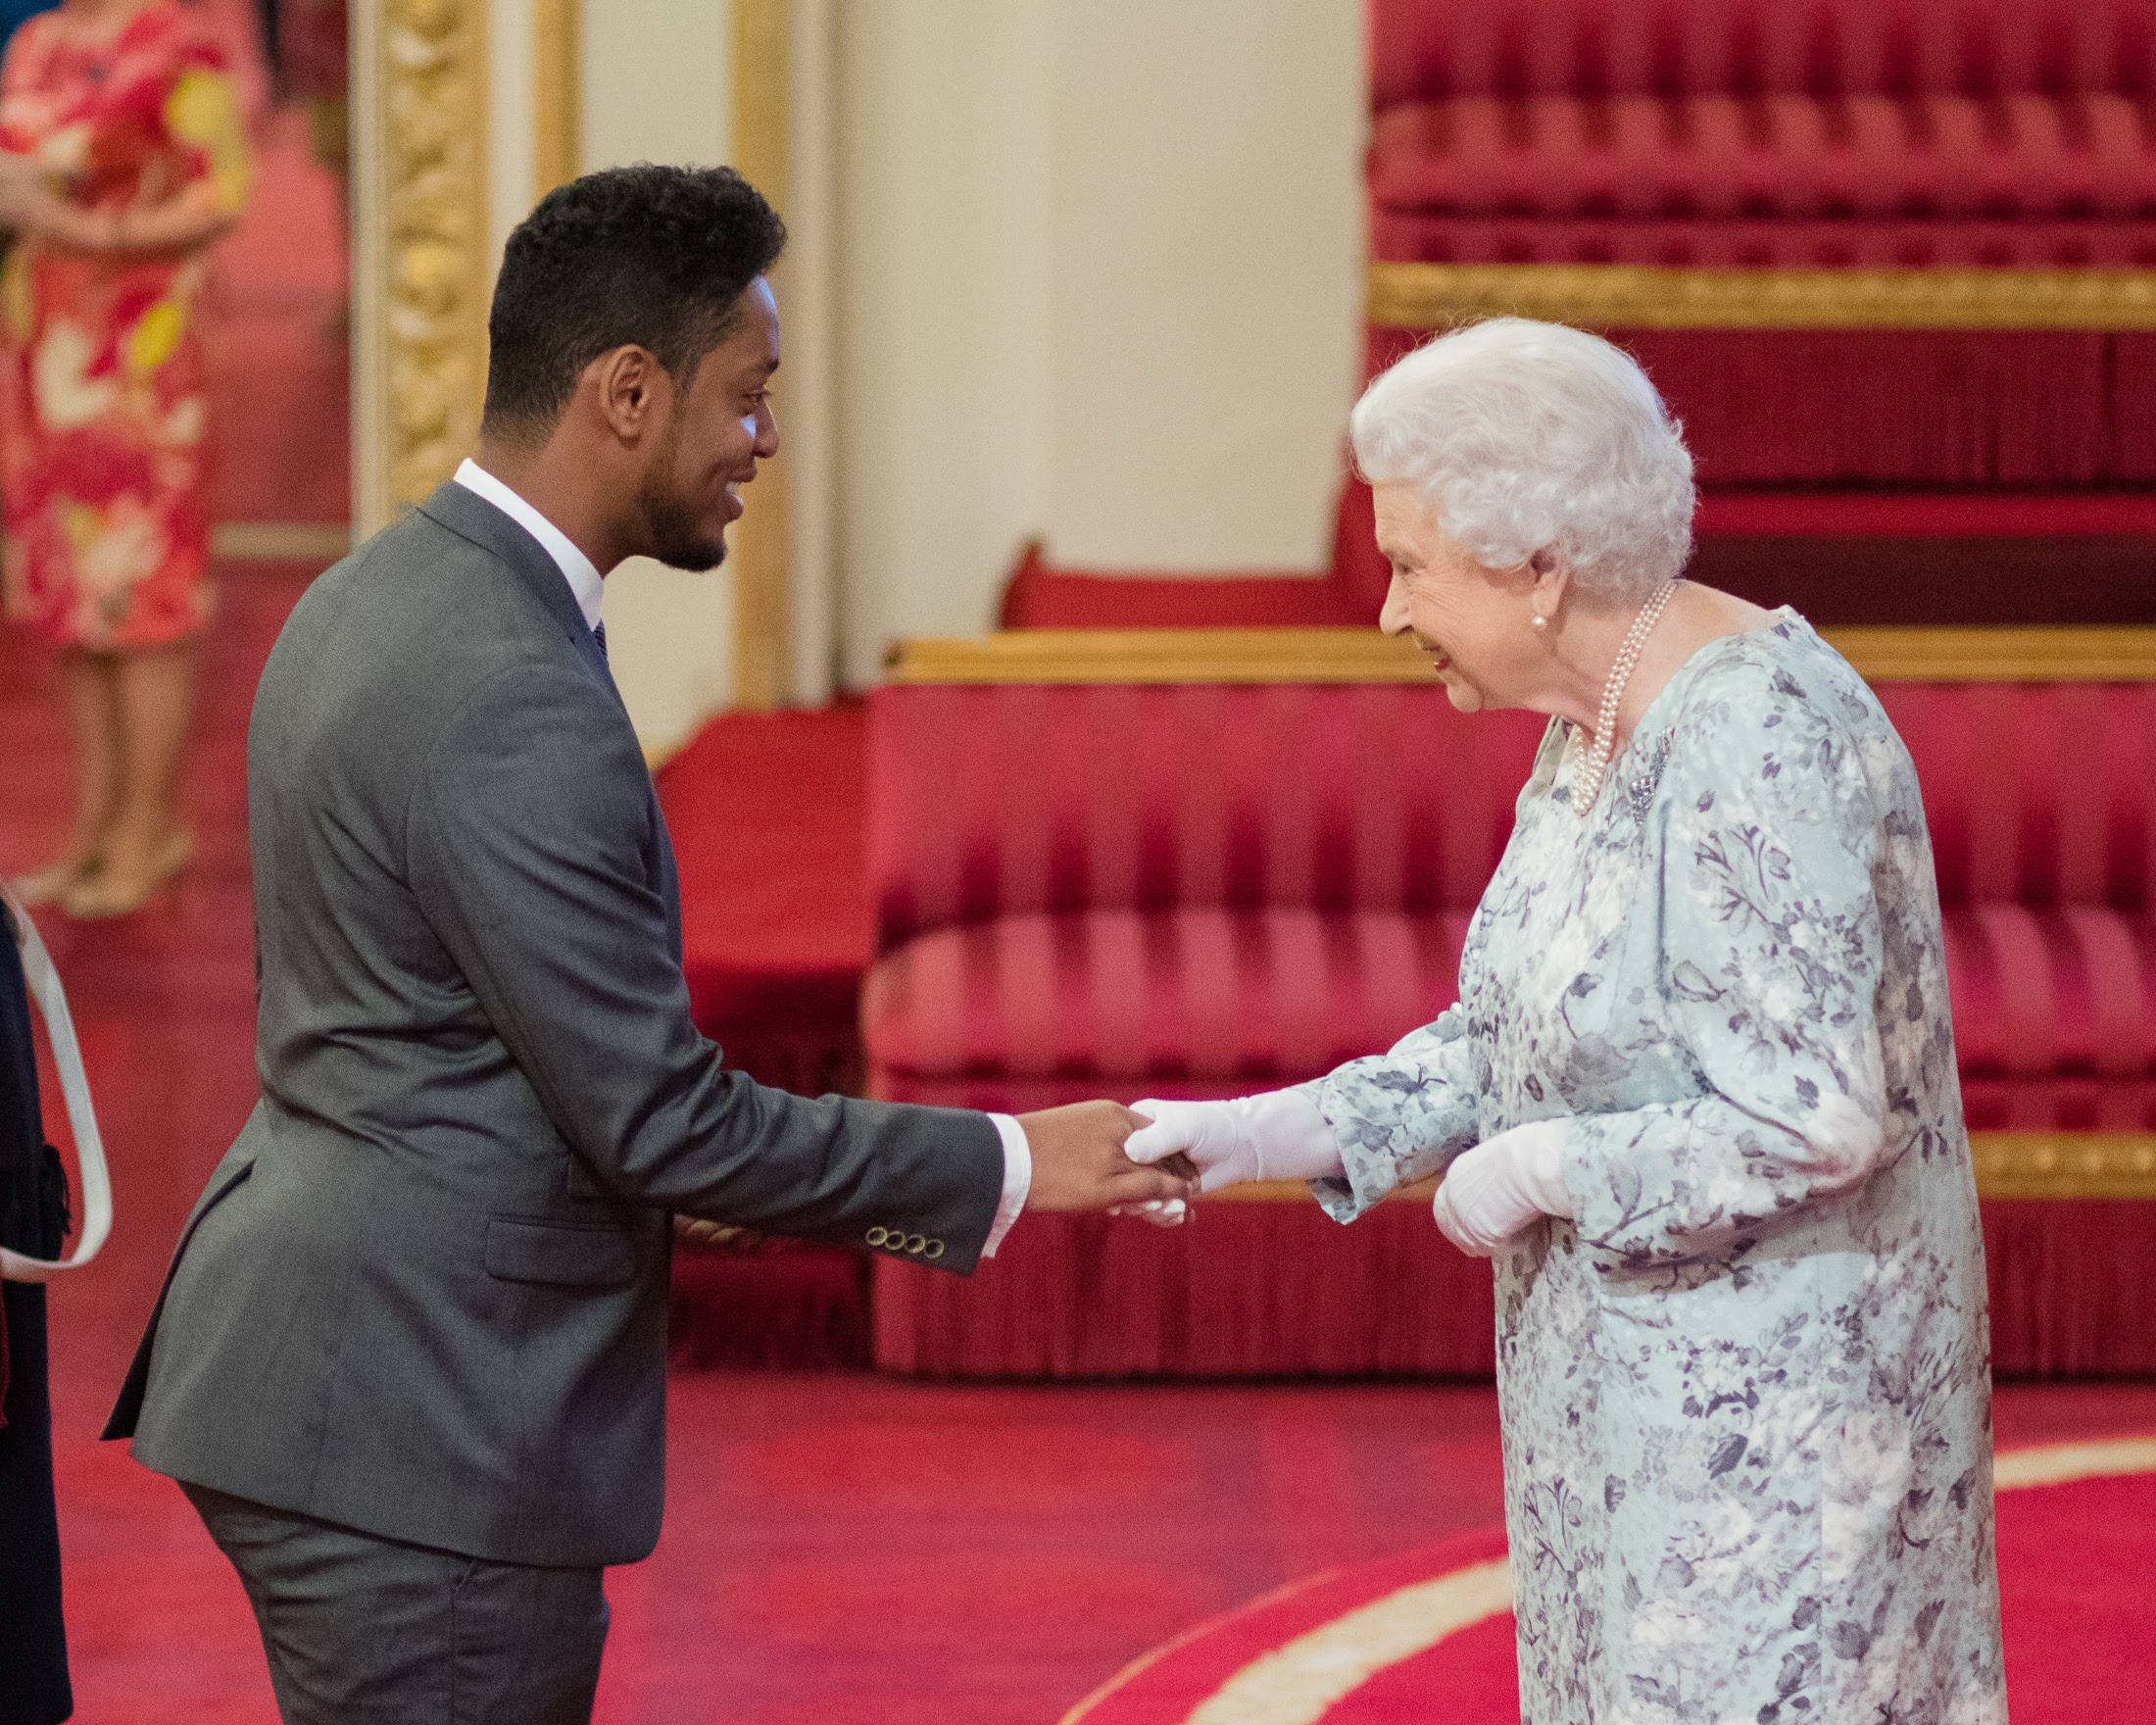 Abdullahi ALim receiving his Queen's Young Leaders Award from Her Majesty The Queen